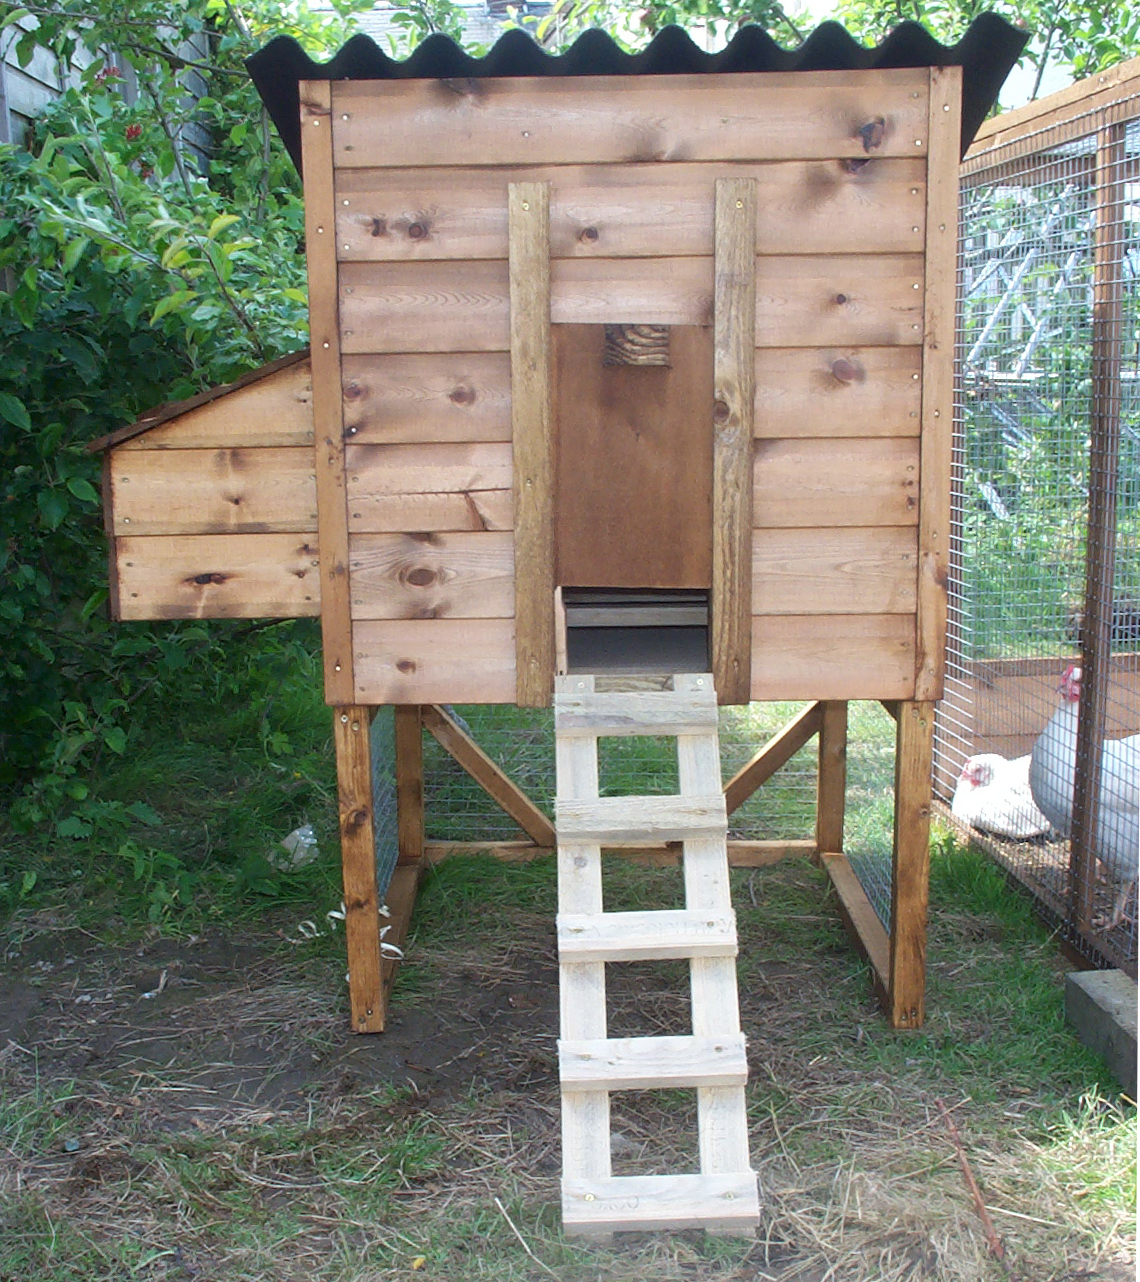 Chicken roasting stand set, wire racks for beer can ...  Poultry Stands